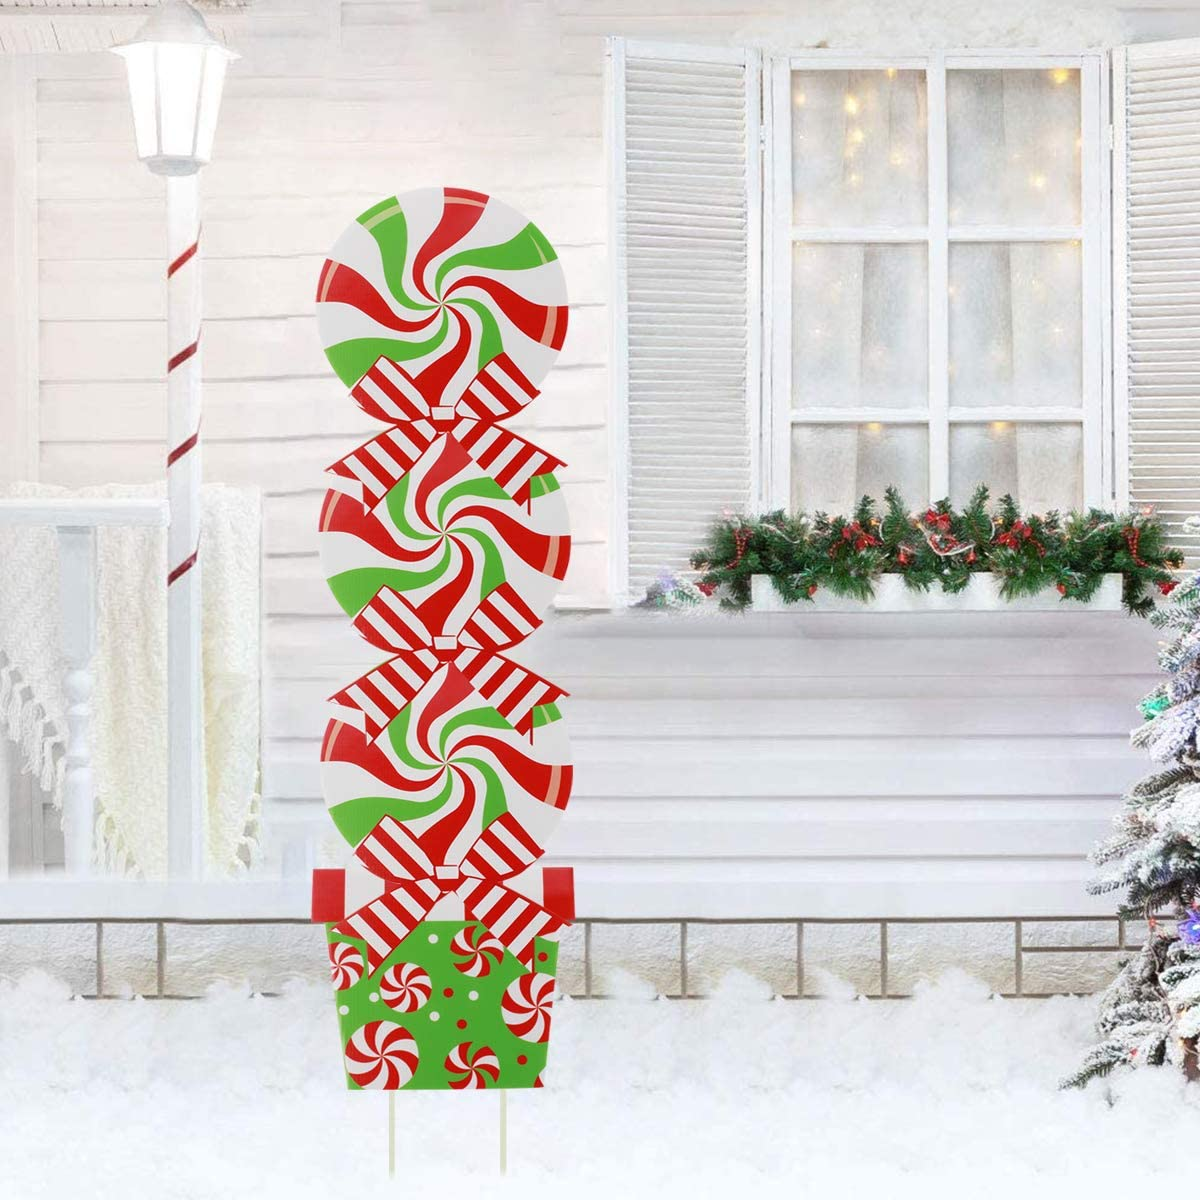 GoGreen Sprouter Candy Christmas Decorations Outdoor - Giant Holiday Decor Signs for Home Lawn Pathway Walkway Candyland Themed Party - 42 Inch Peppermint Xmas Yard Sign Stakes